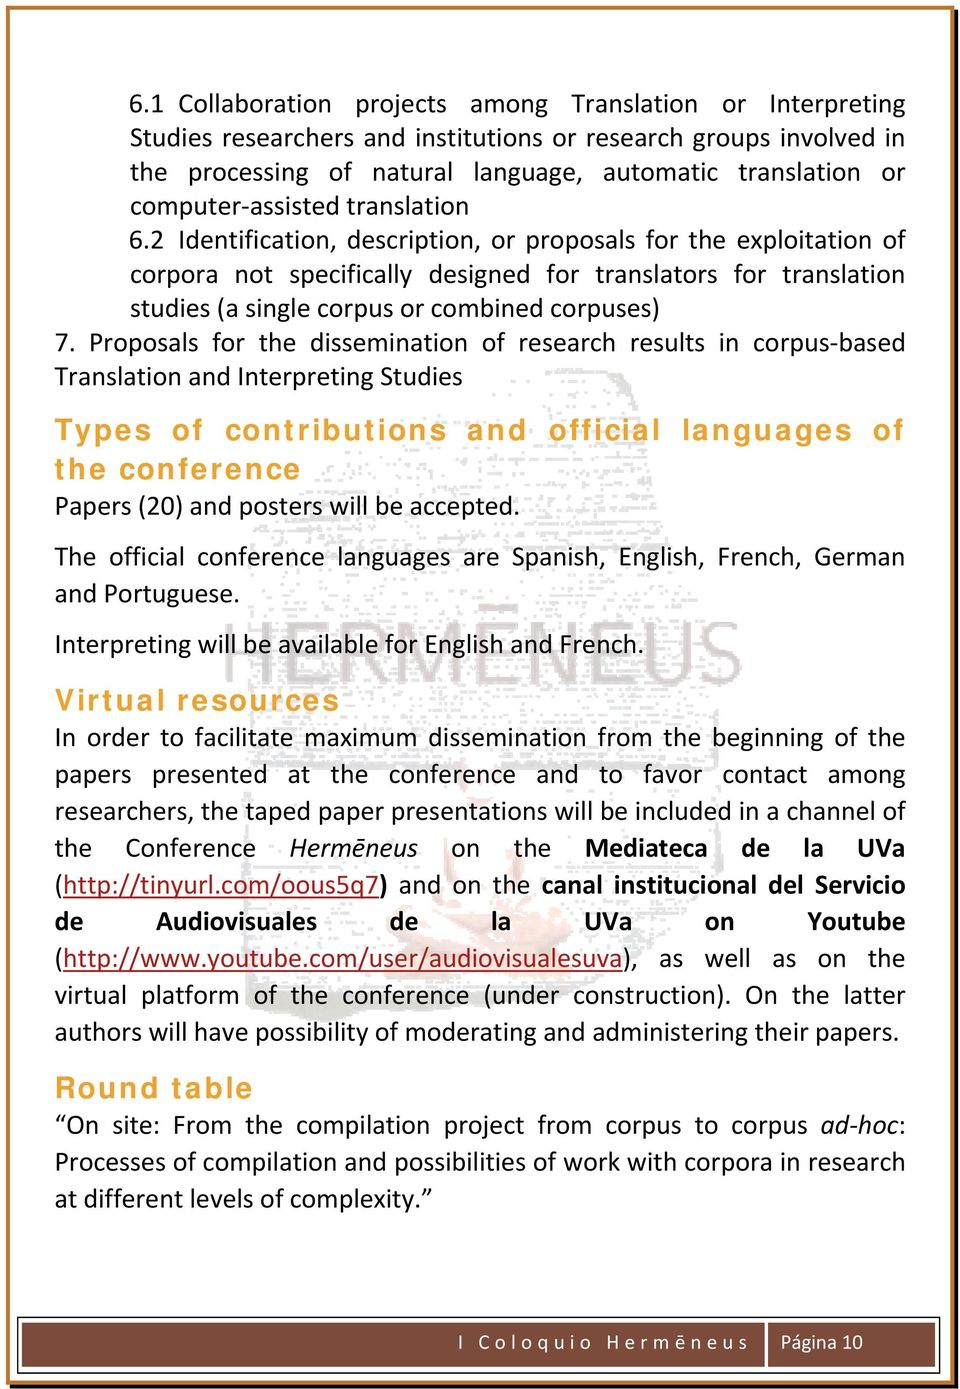 2 Identification, description, or proposals for the exploitation of corpora not specifically designed for translators for translation studies (a single corpus or combined corpuses) 7.